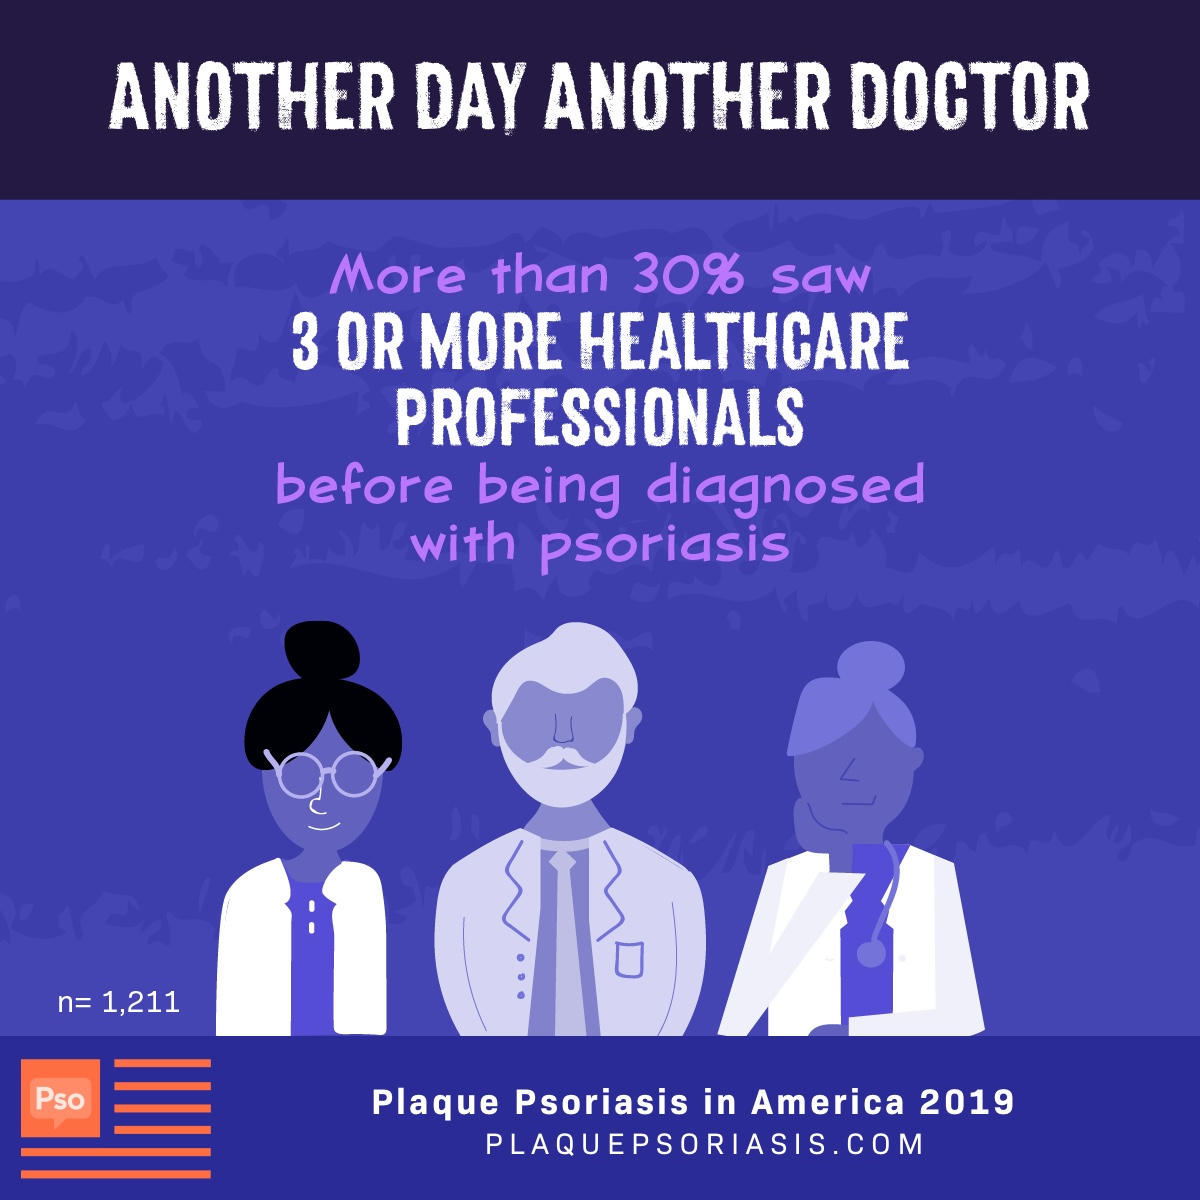 More than 30% of patients saw 3 or more healthcare providers before getting diagnosed with psoriasis.